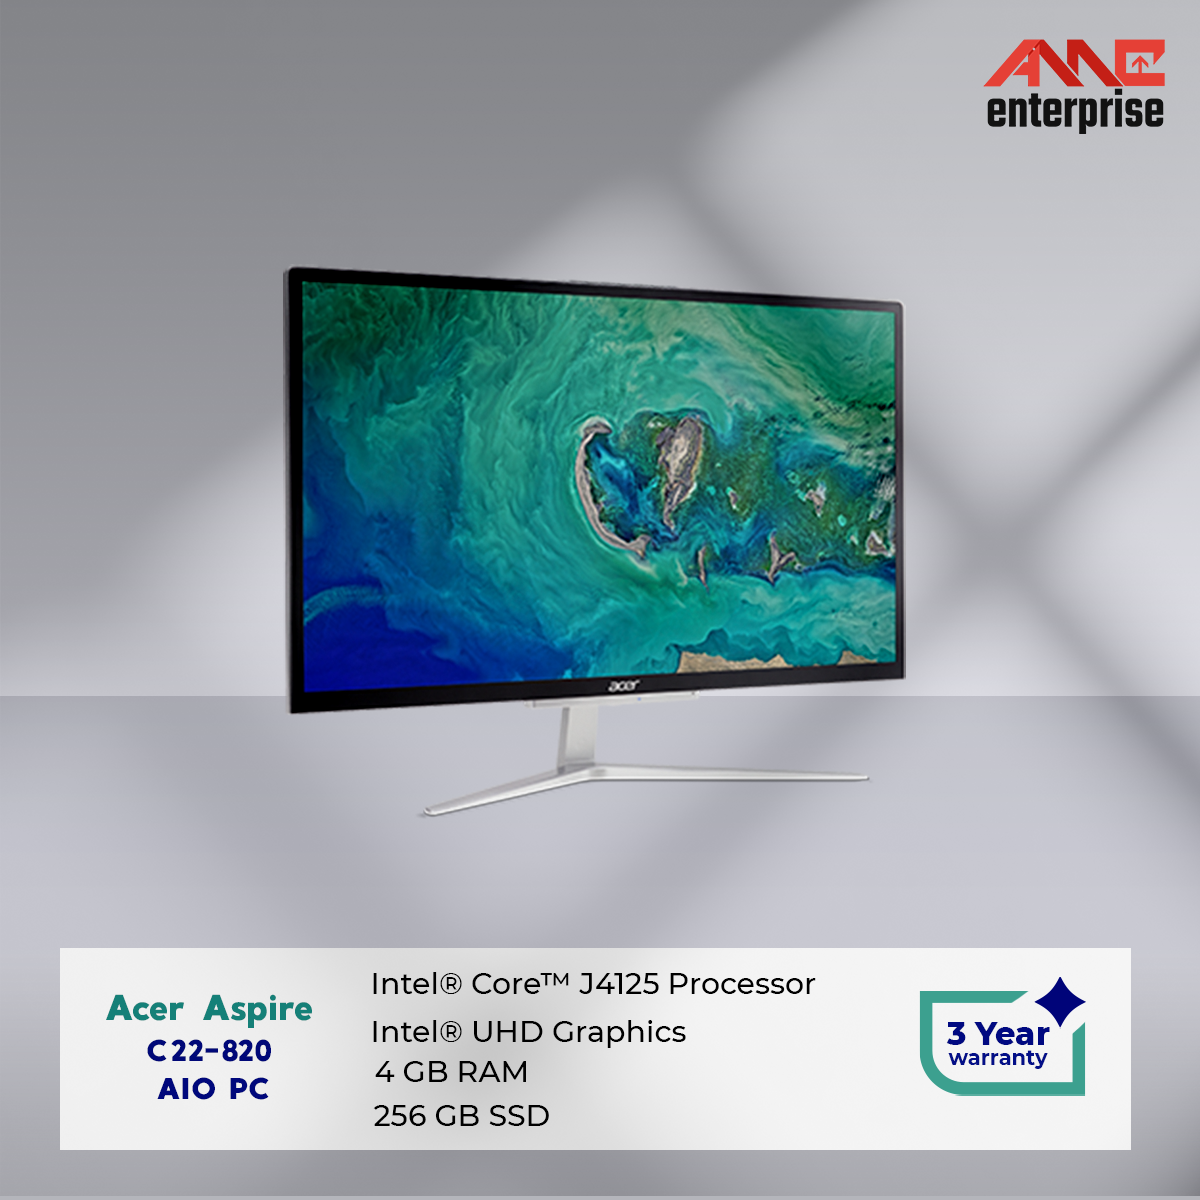 Acer aspire c22-820 AIO PC (3).png